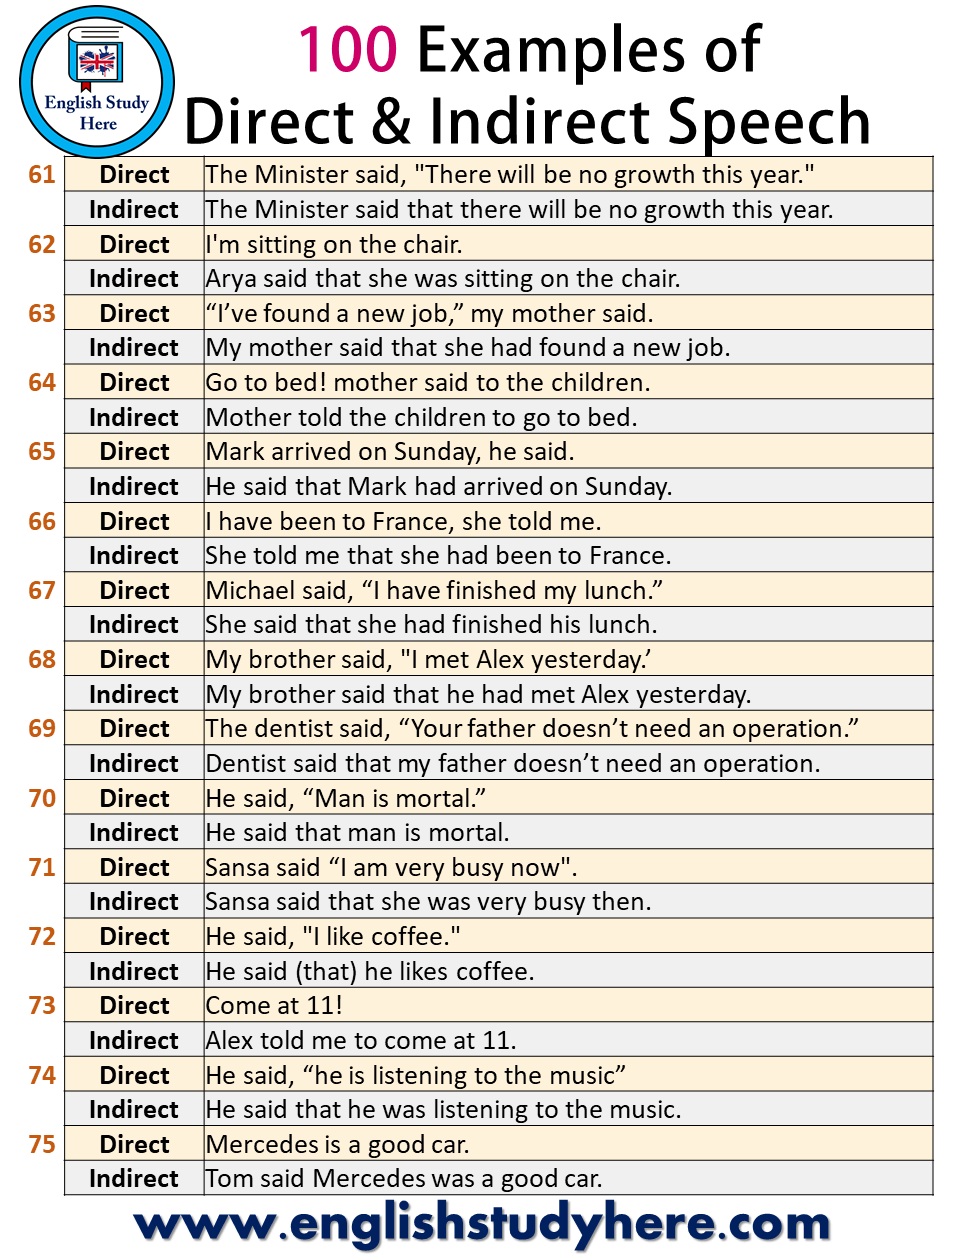 100 Examples of Direct and Indirect Reported Speech in English